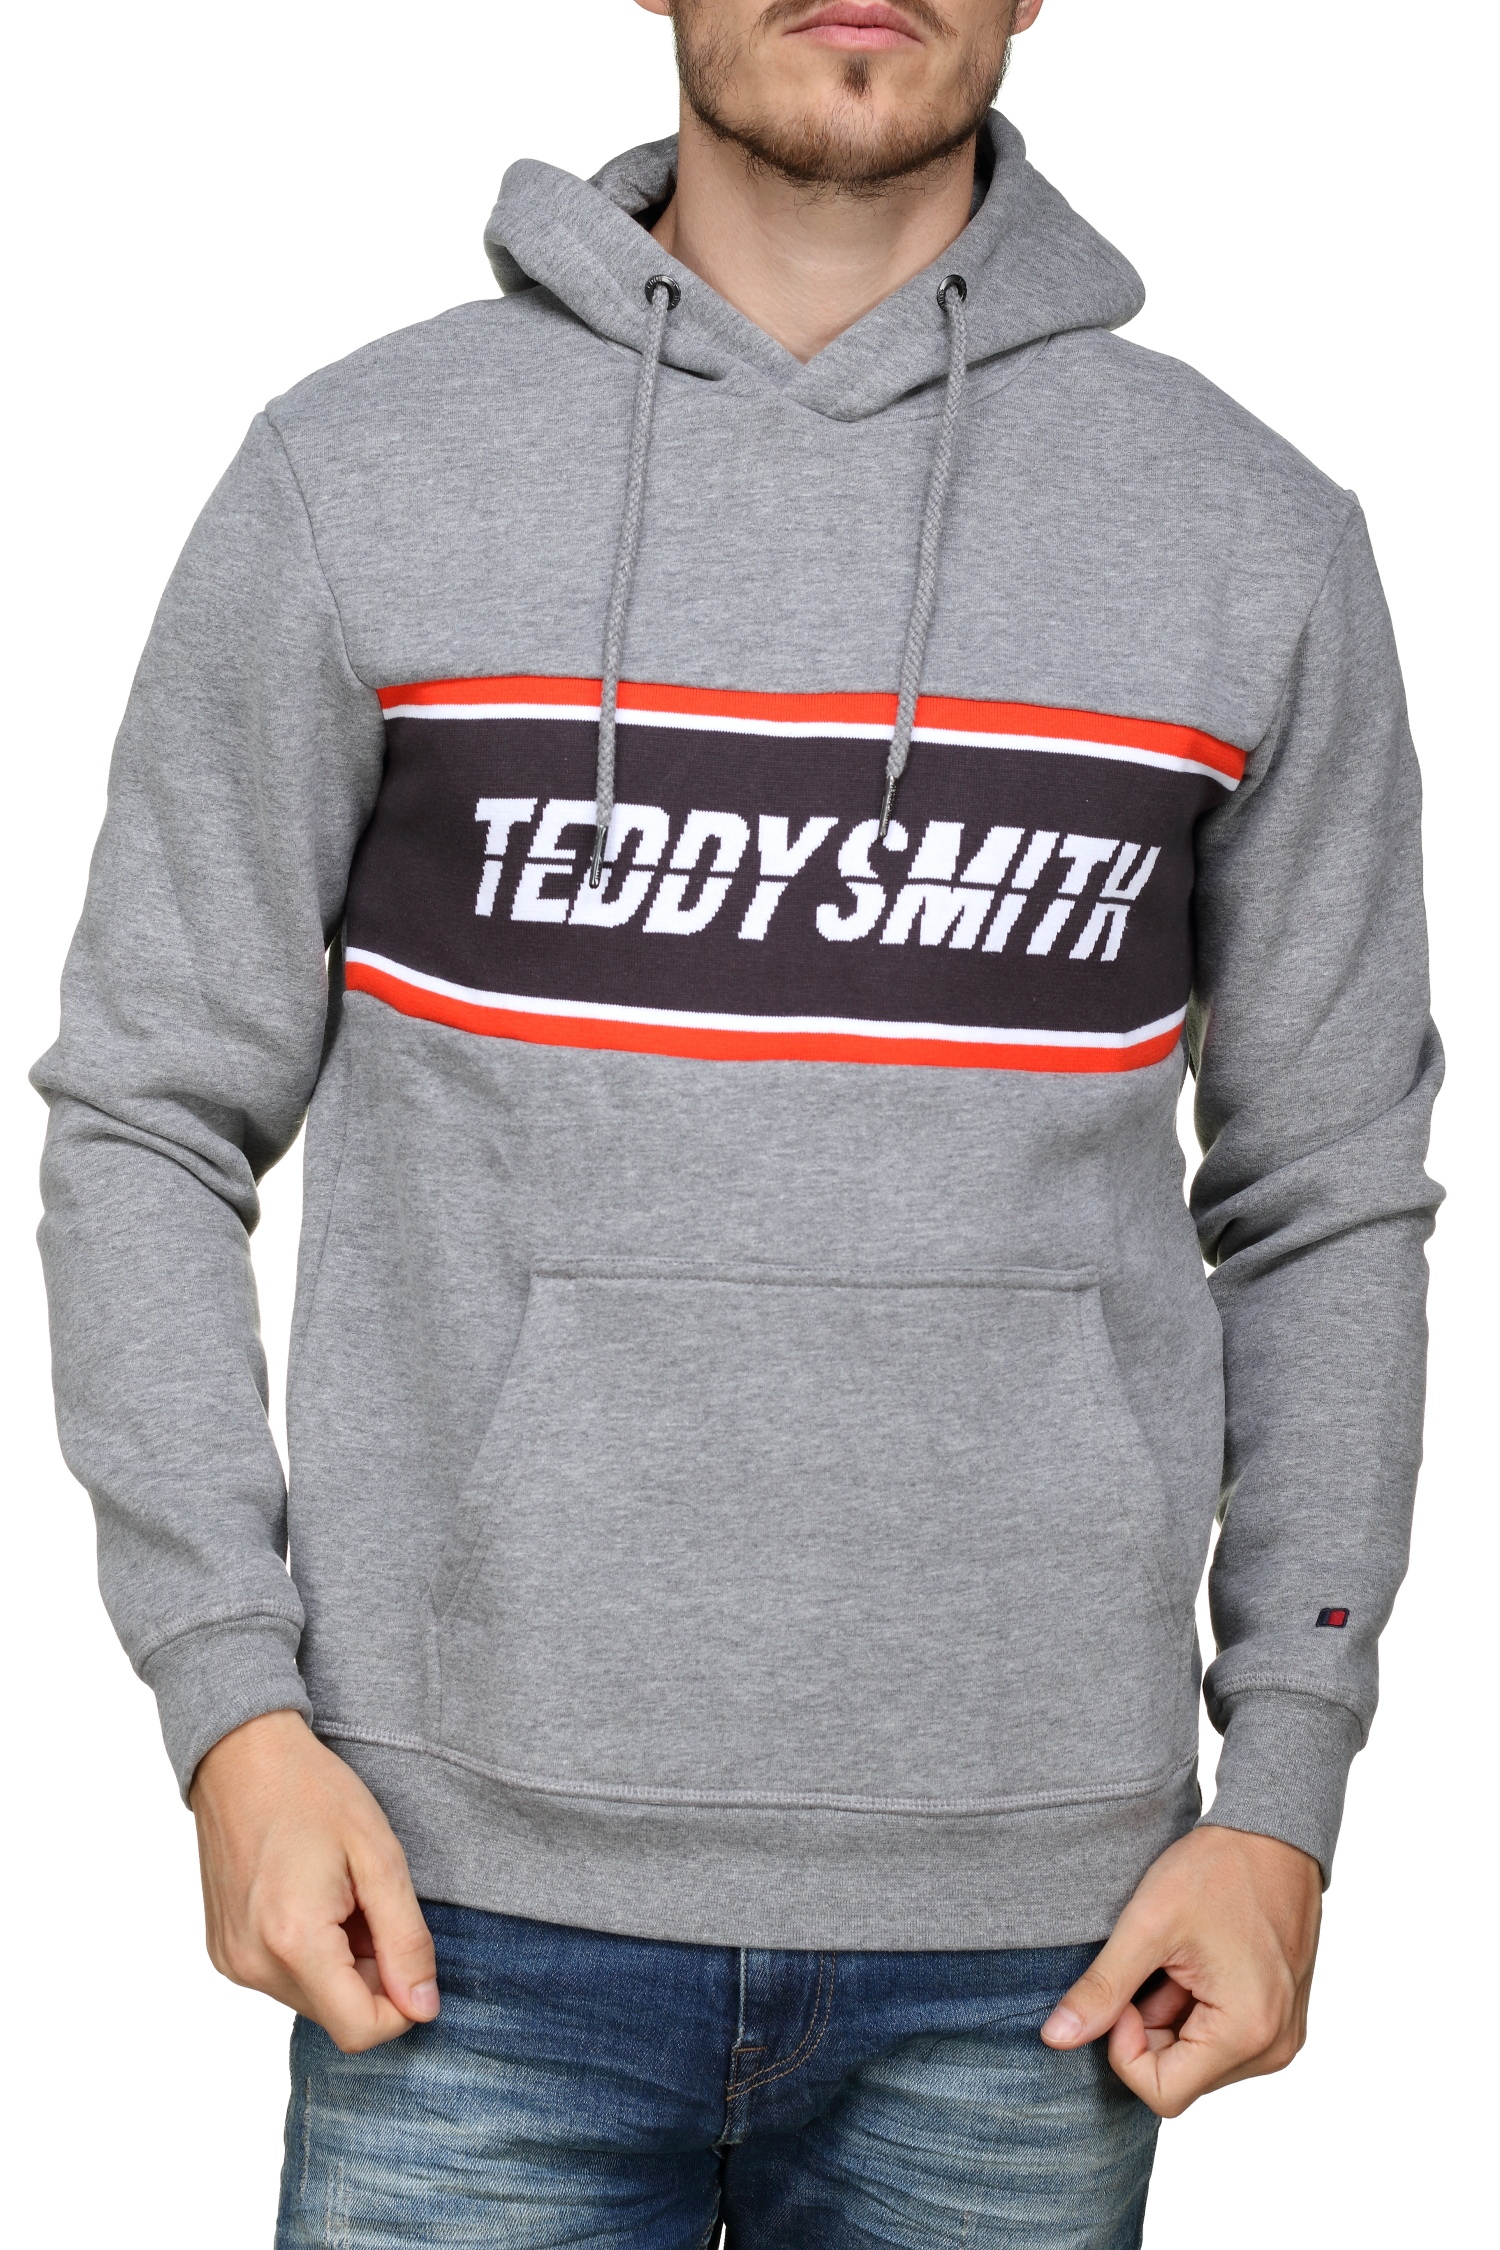 http://www.leadermode.com/177750/teddy-smith-s-adrien-hoody-10814281d-149-gris-chine.jpg